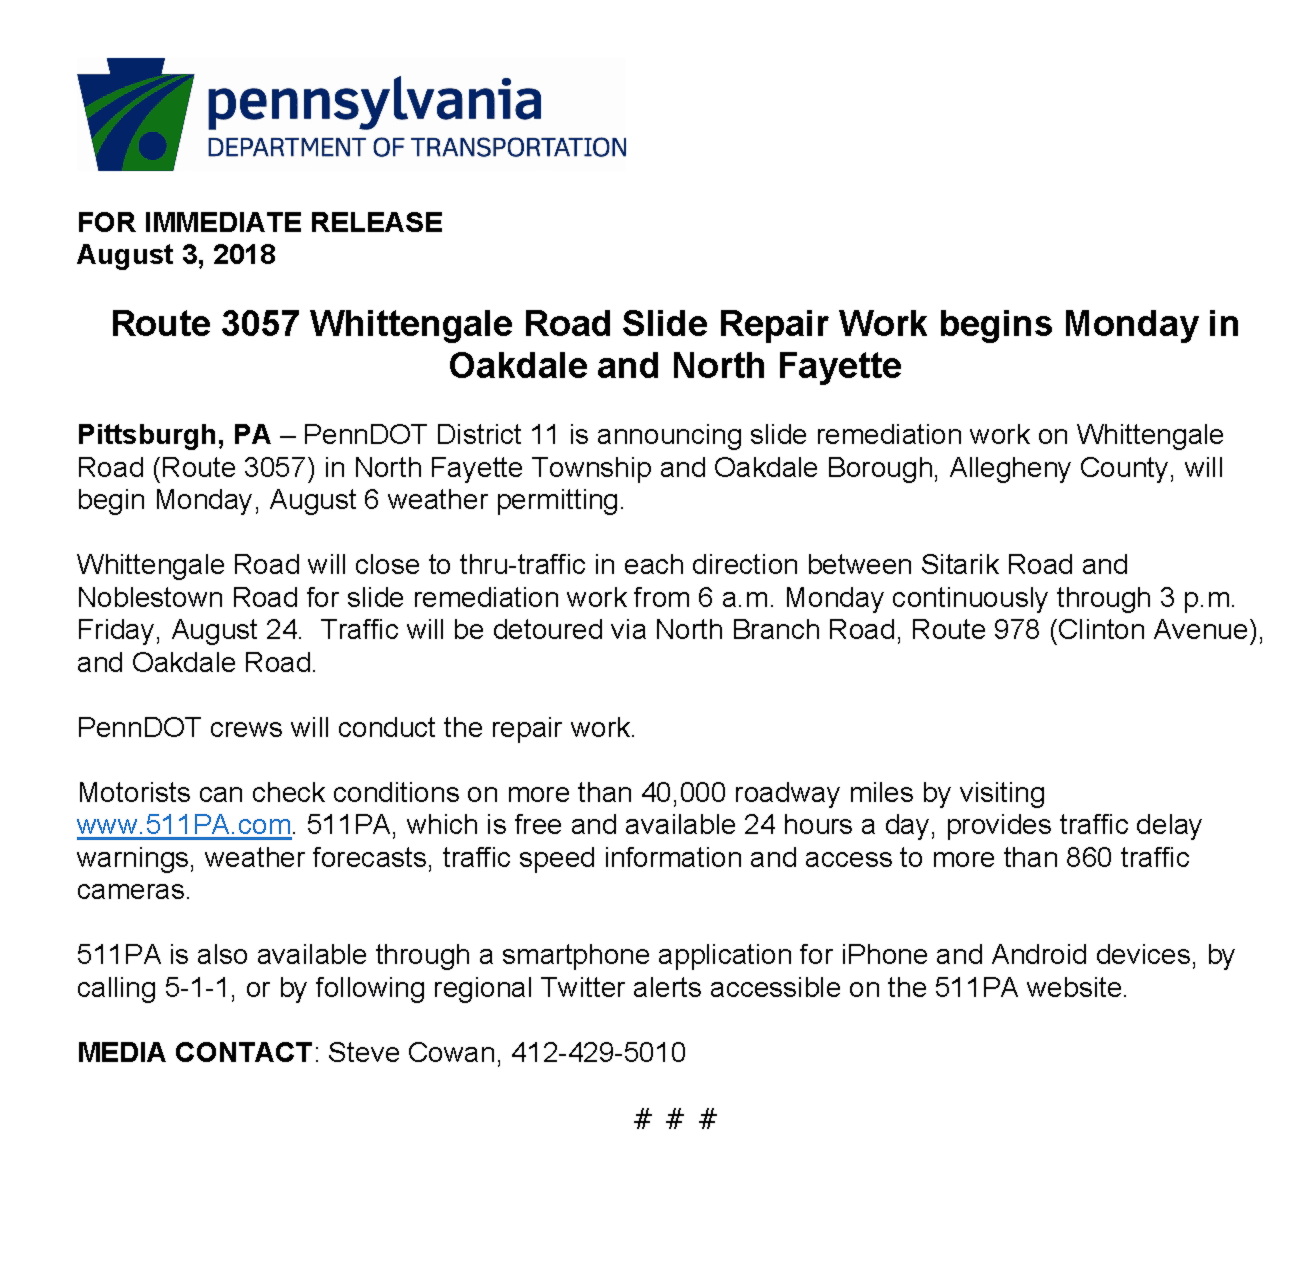 PennDOT Release of Whittengale Road Closures